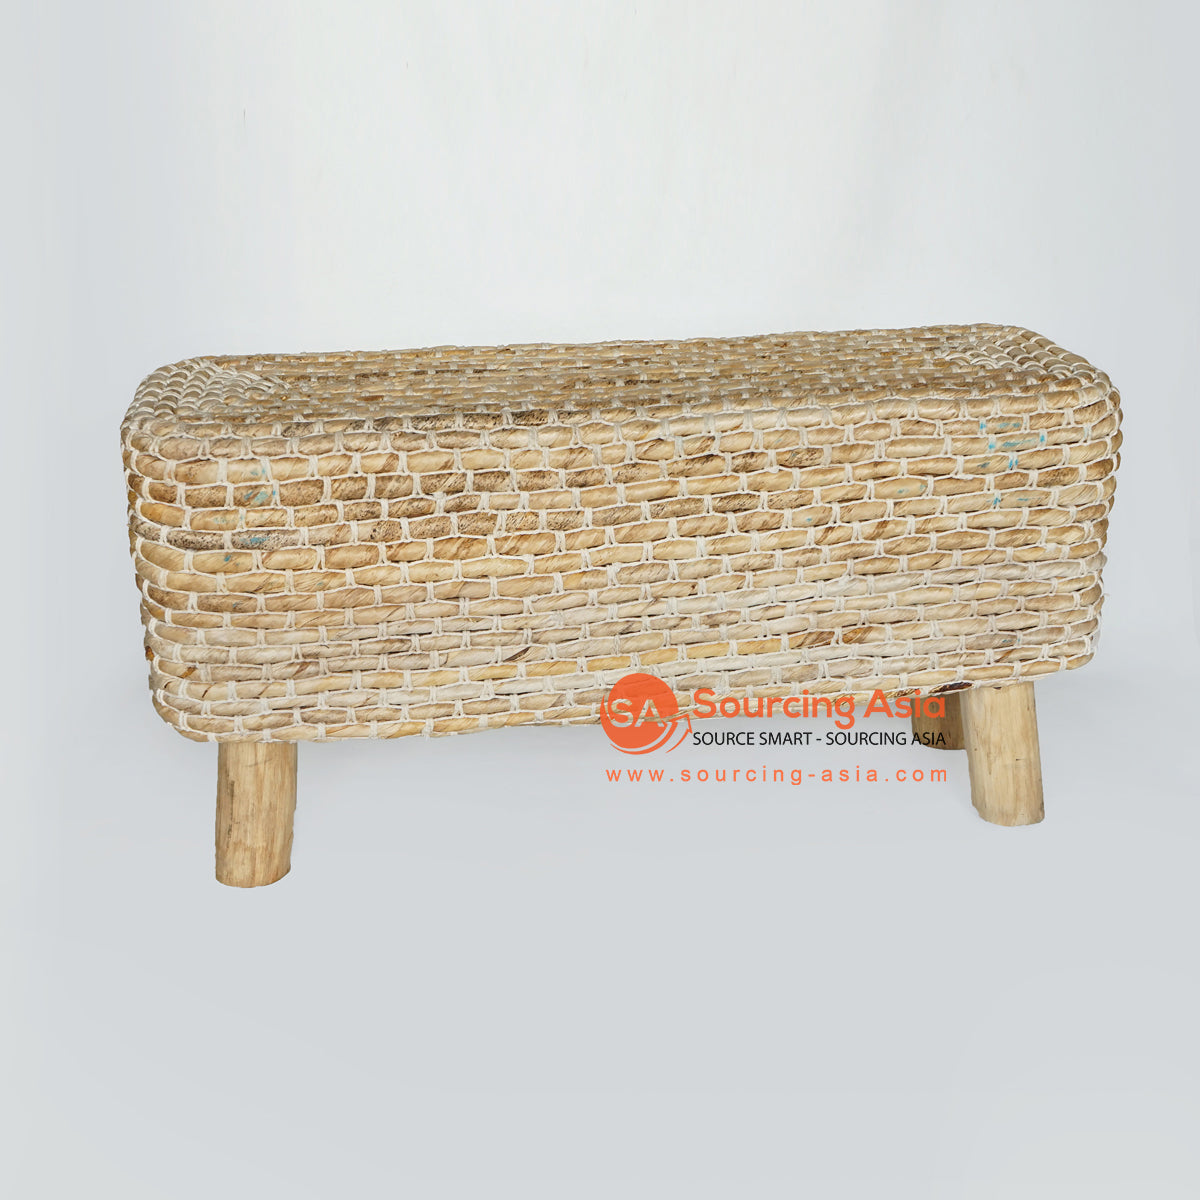 MRC161 NATURAL WOODEN RECTANGULAR STOOL WITH BANANA FIBER AND WHITE ROPE SEAT